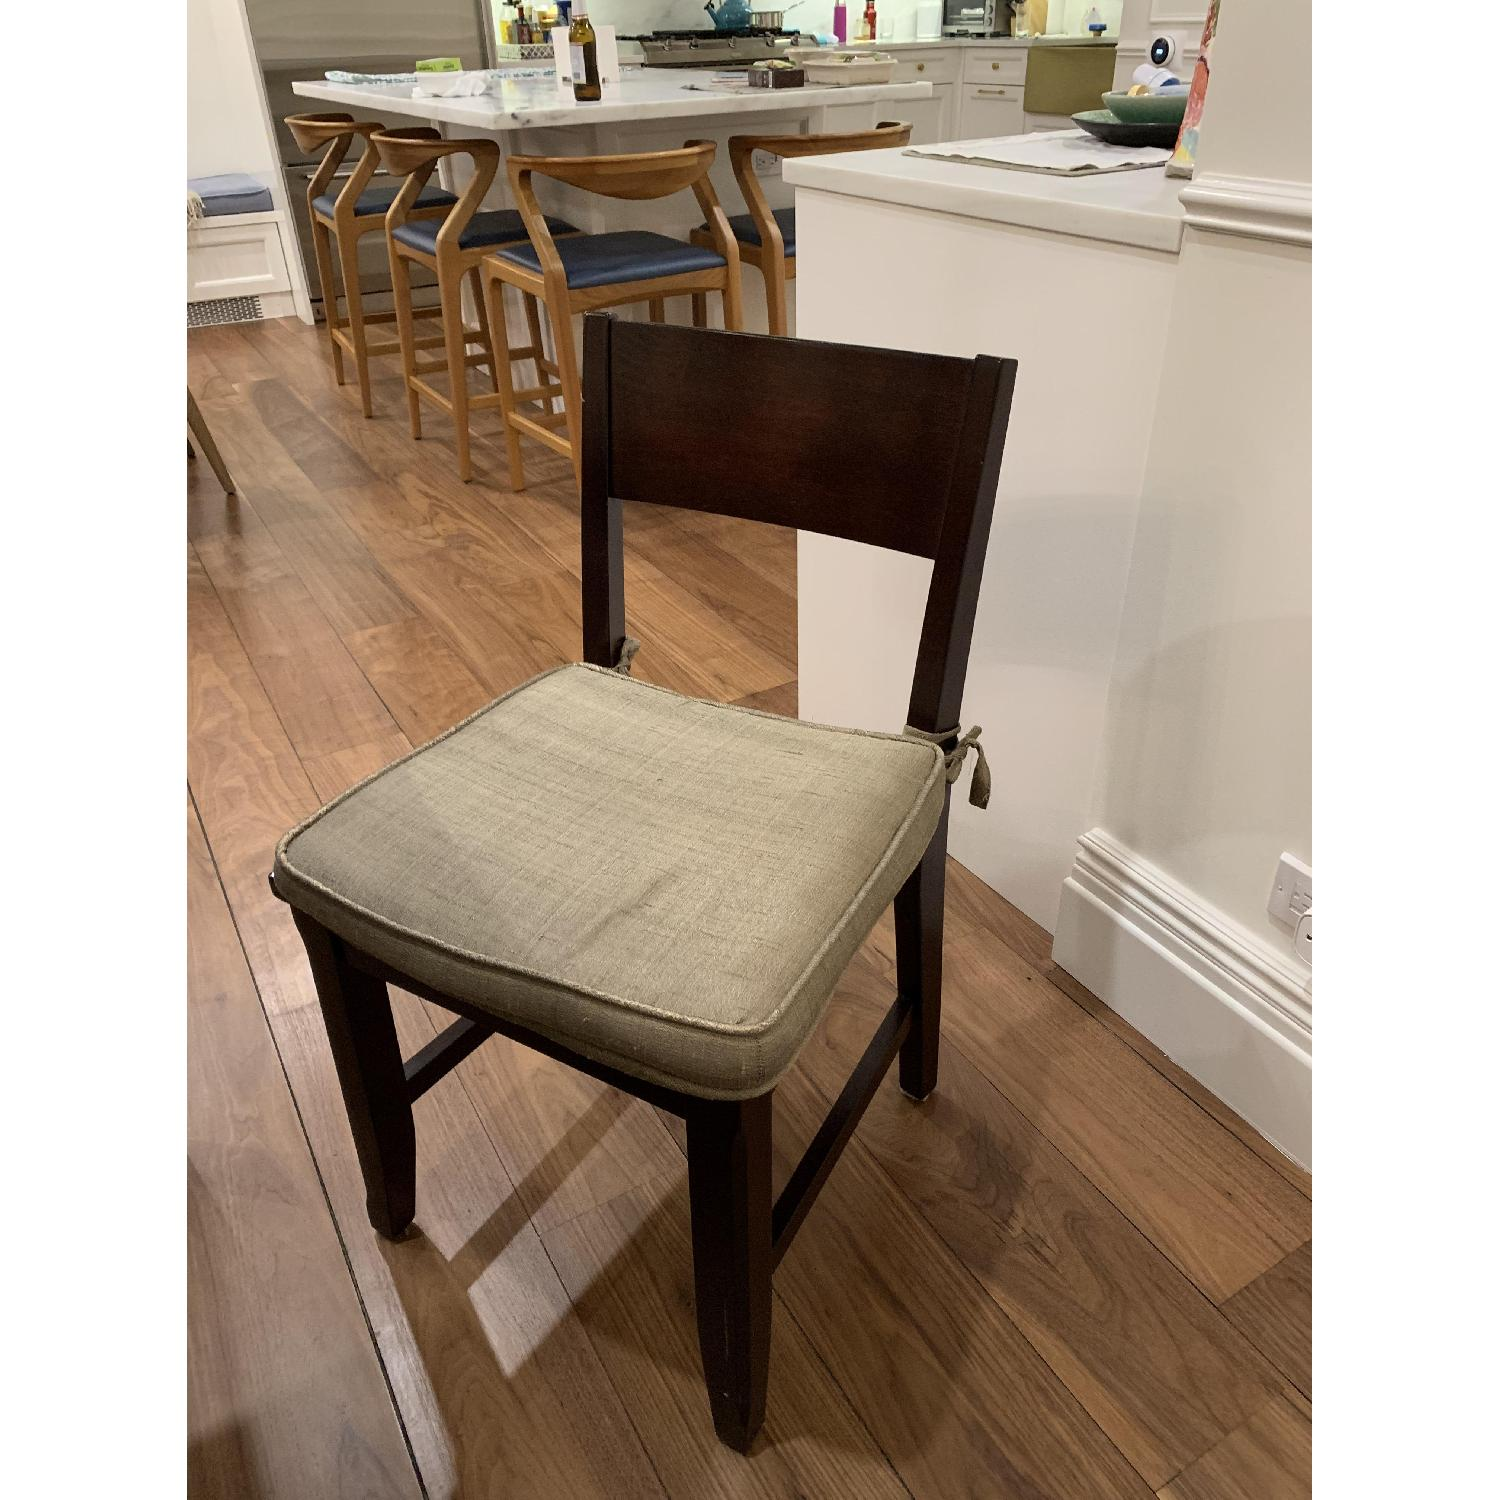 Montreal Espresso Wood Chairs - image-9